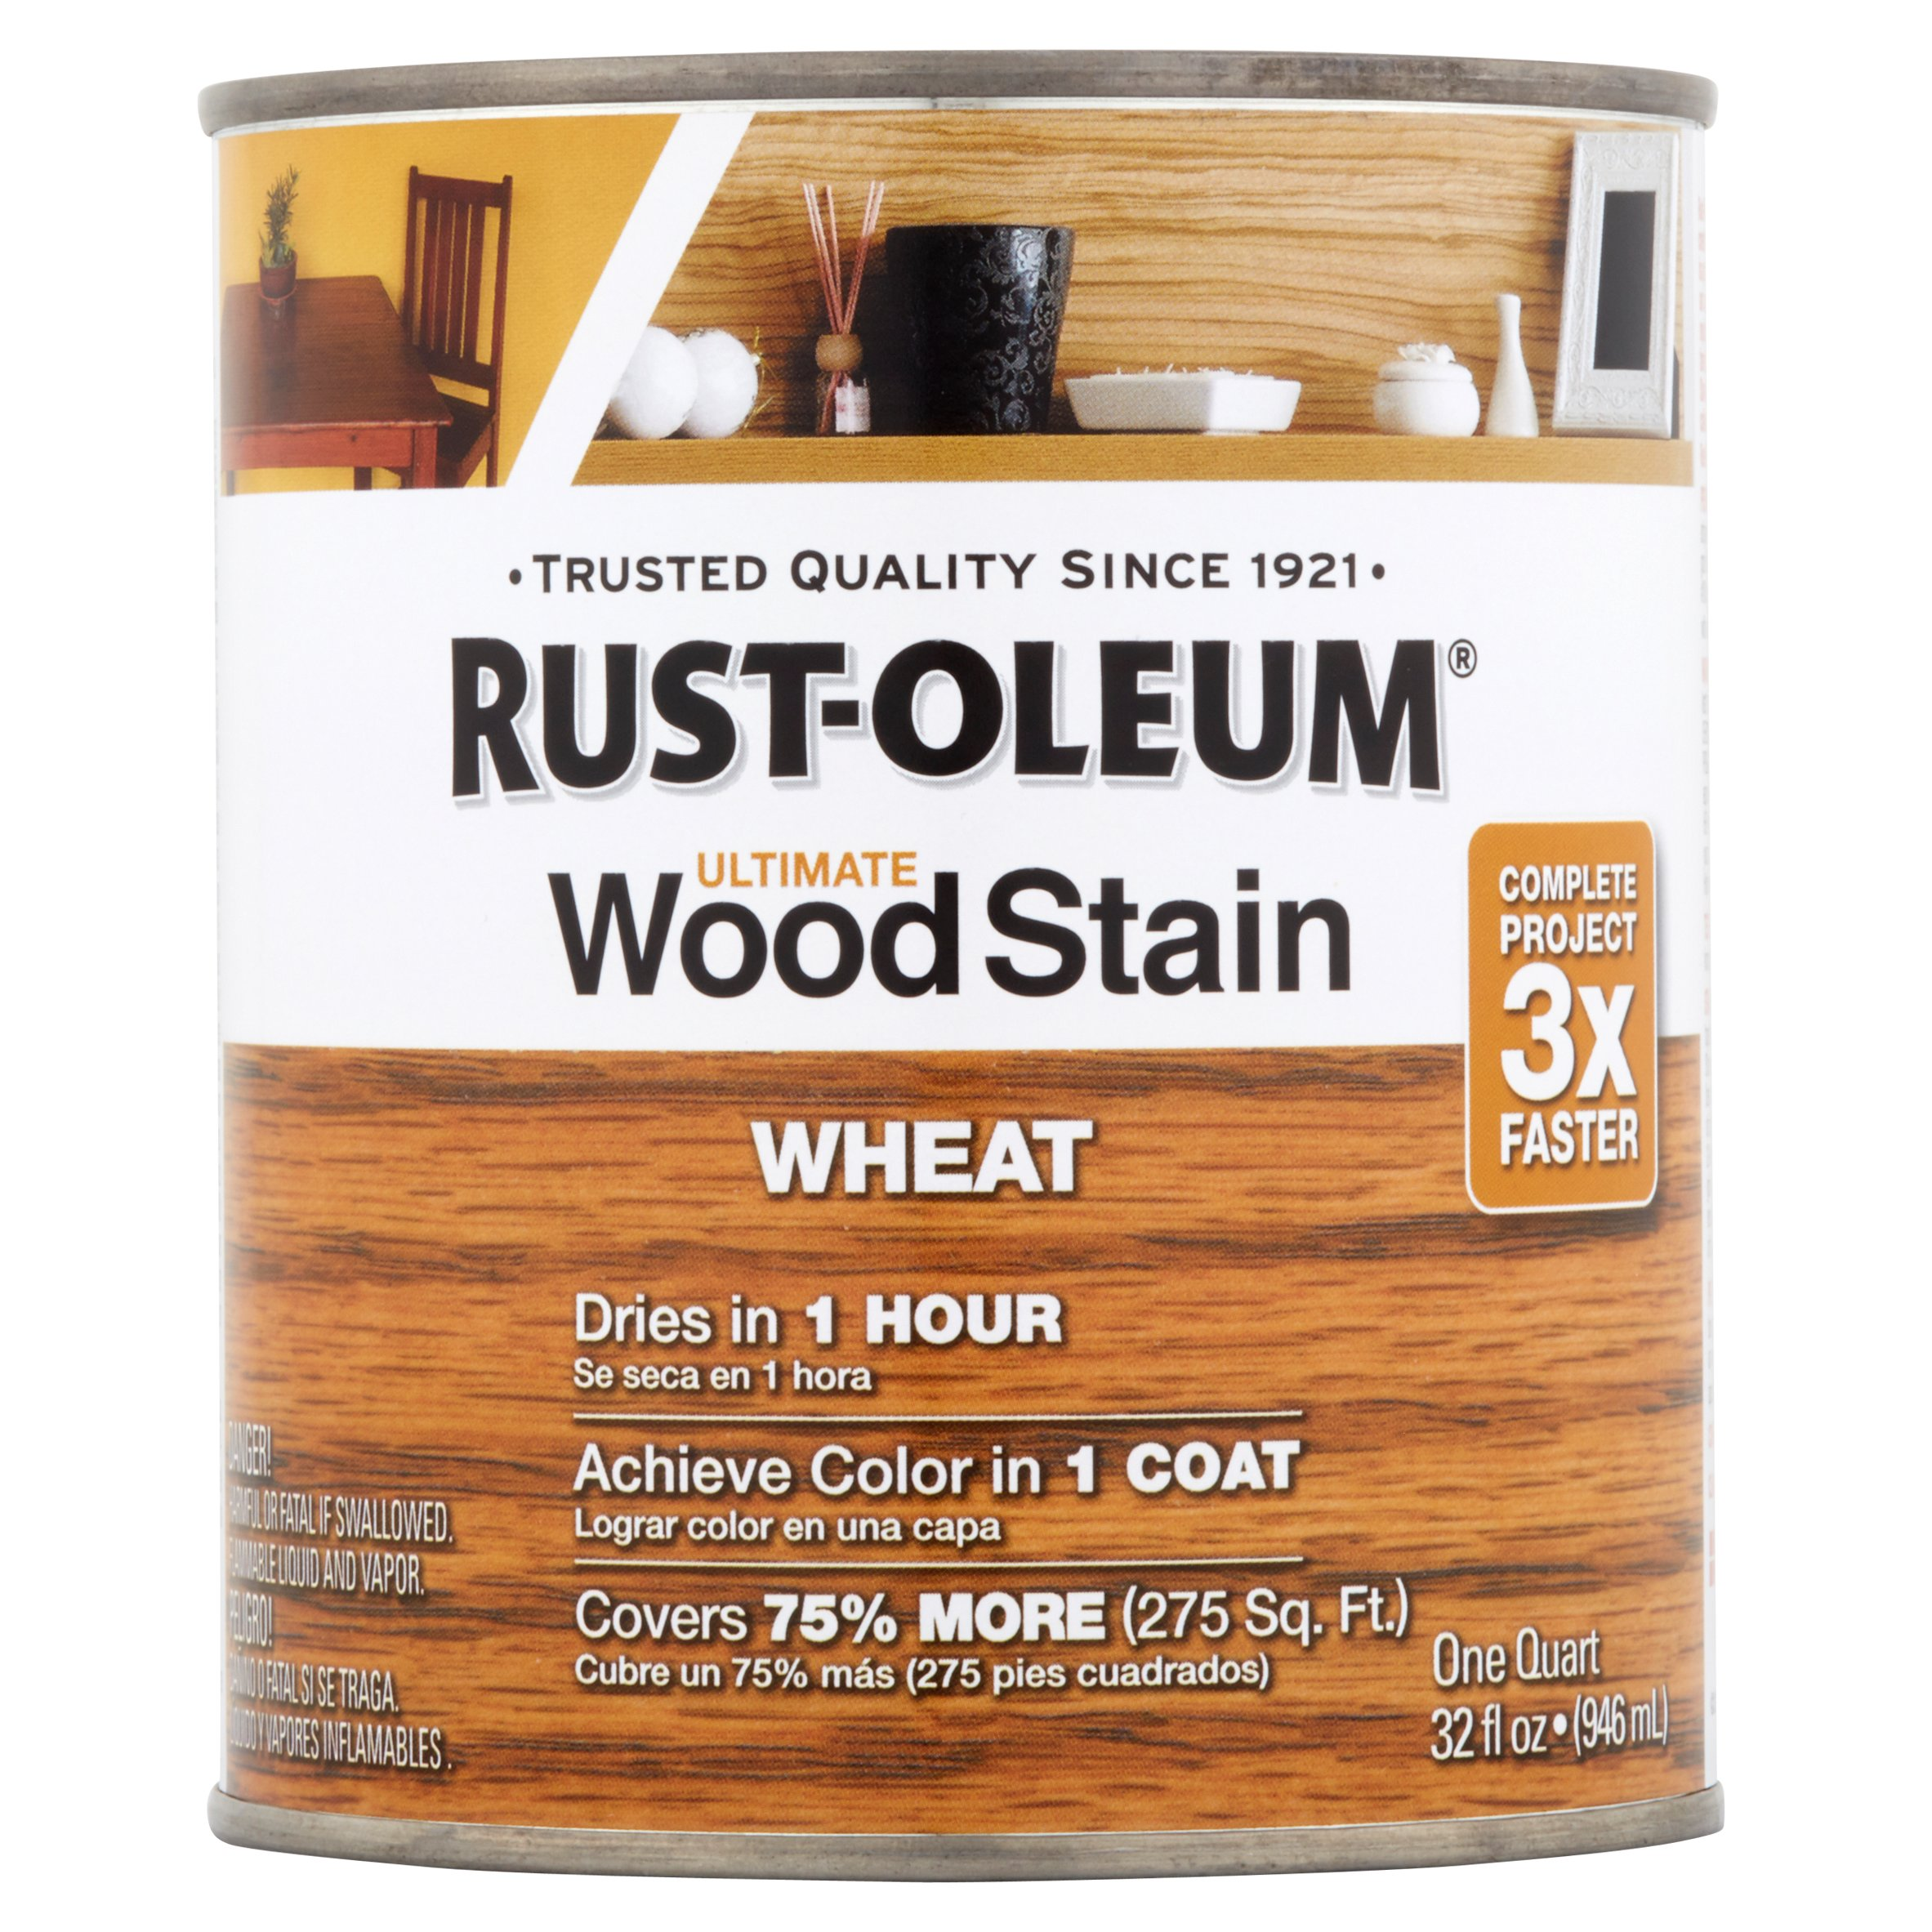 Rust-Oleum Wheat Ultimate Wood Stain, 32 fl oz